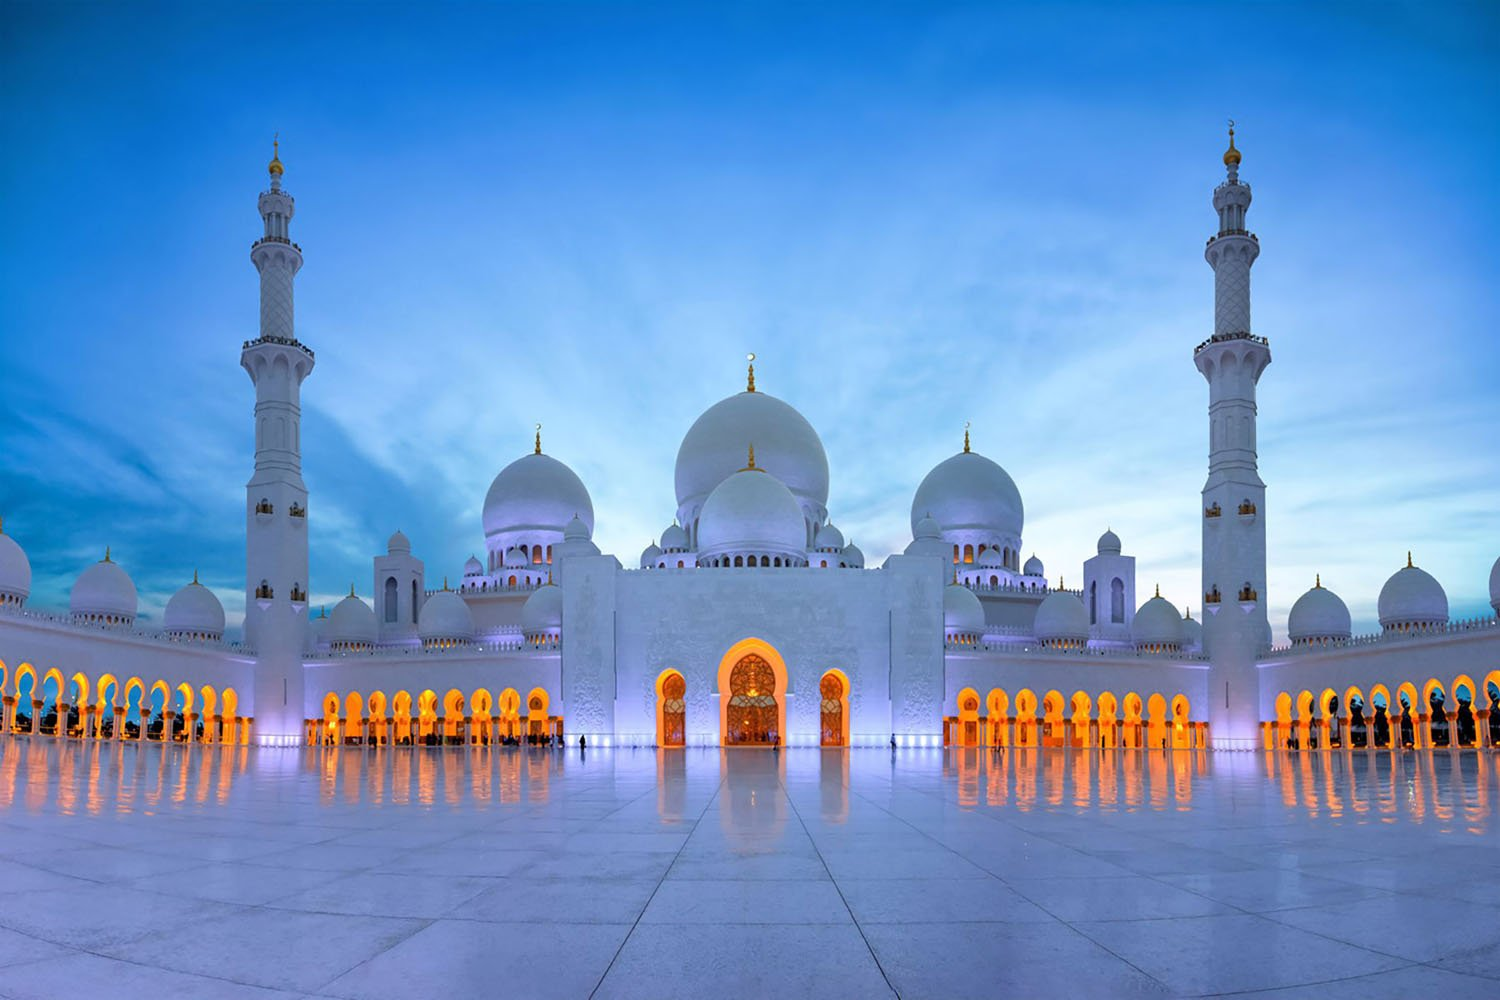 Sheikh Zayed Mosque in Abu Dhabi, United Arab Emirates.